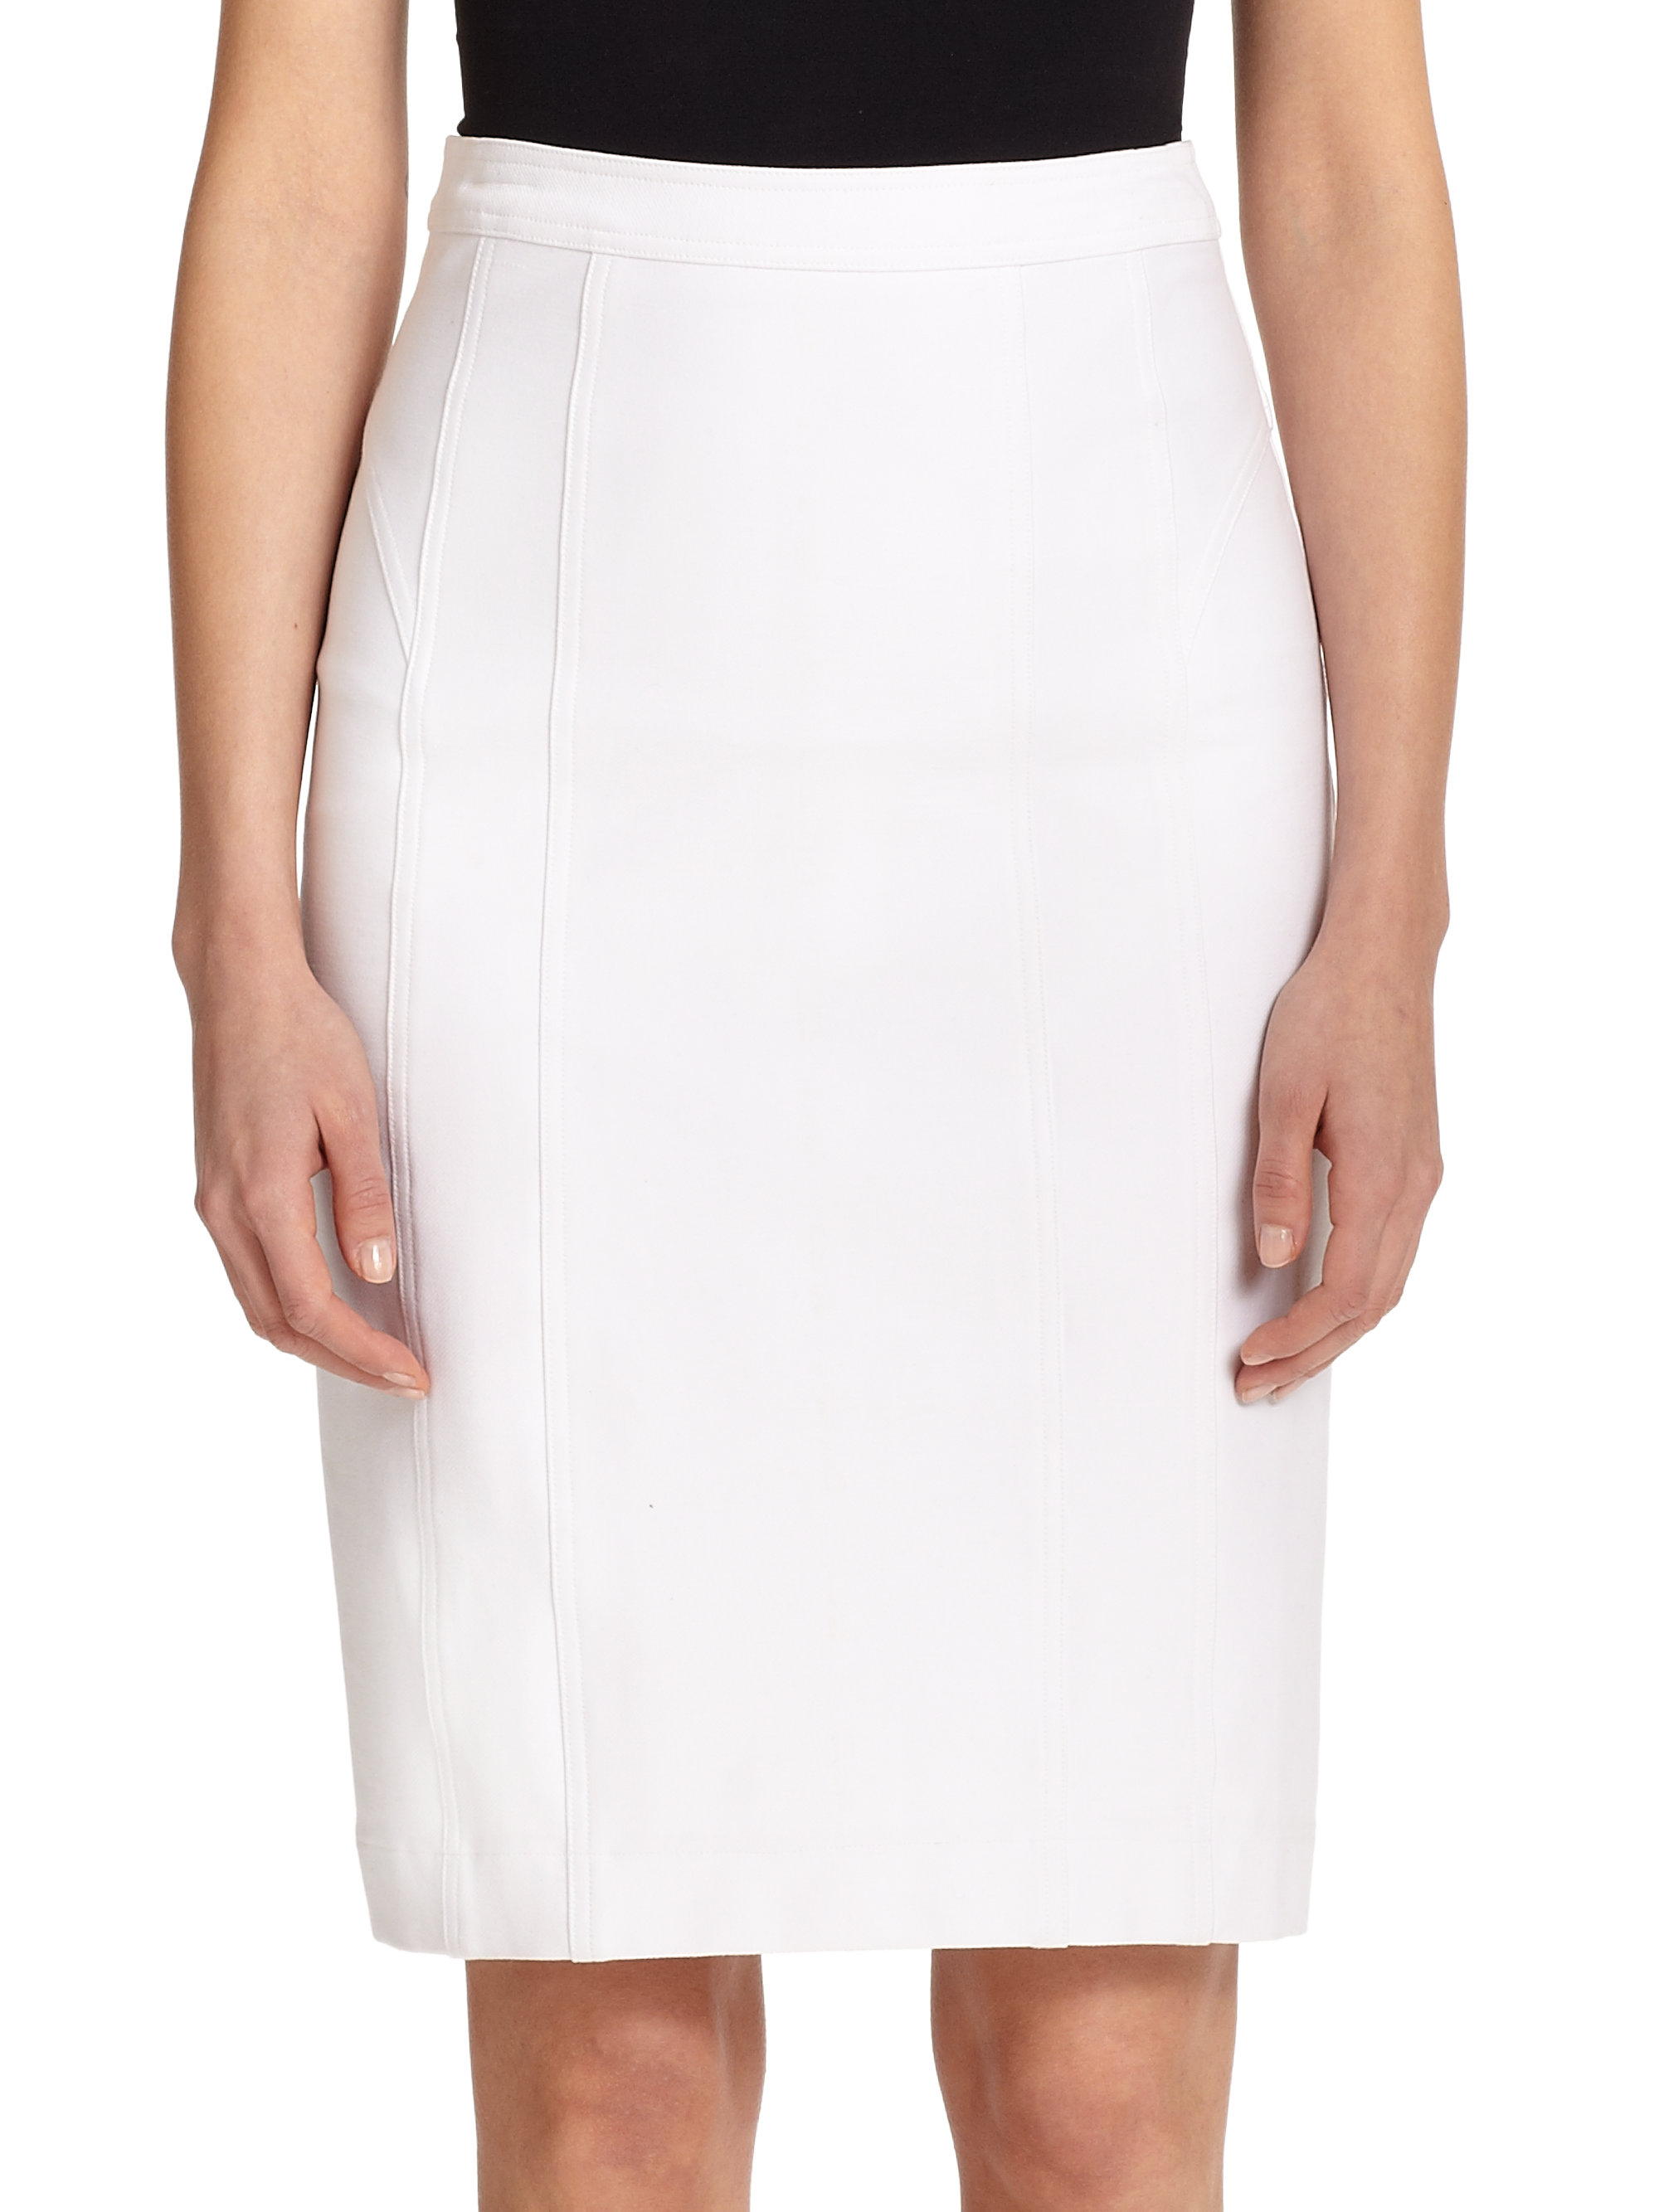 Nanette lepore Stretch Twill Pencil Skirt in White | Lyst